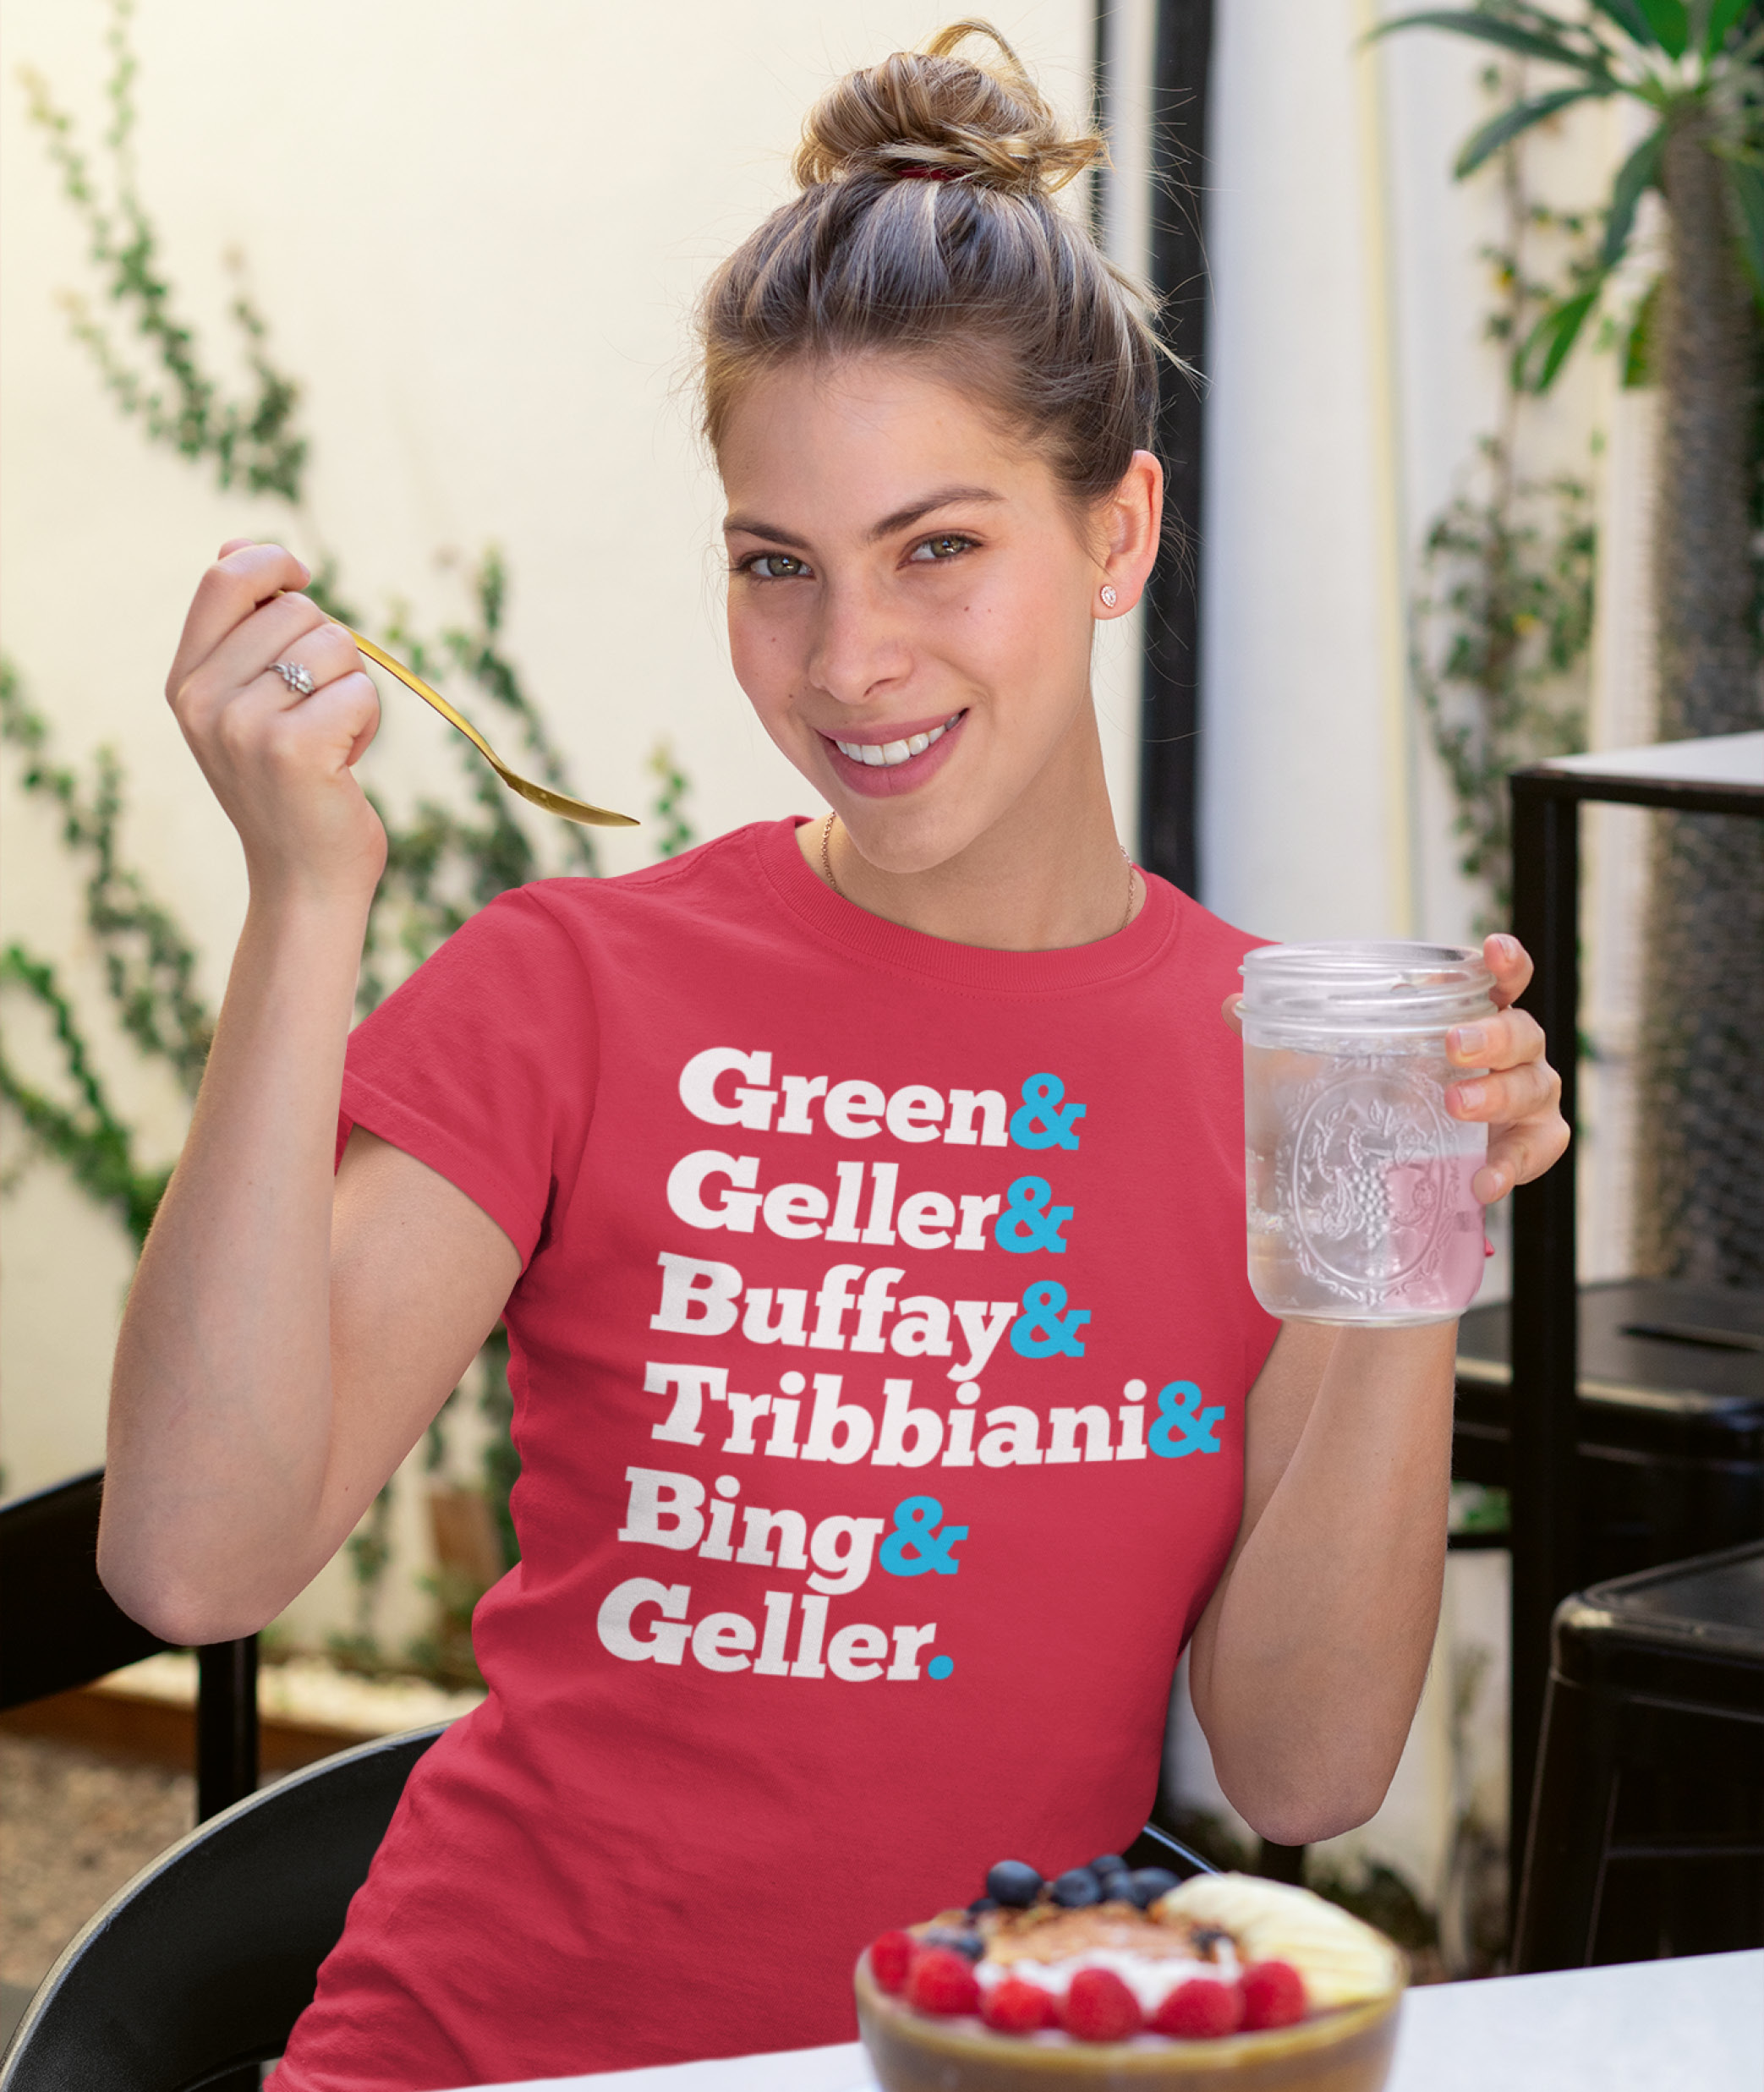 Lady wearing Red Friends Names T Shirt